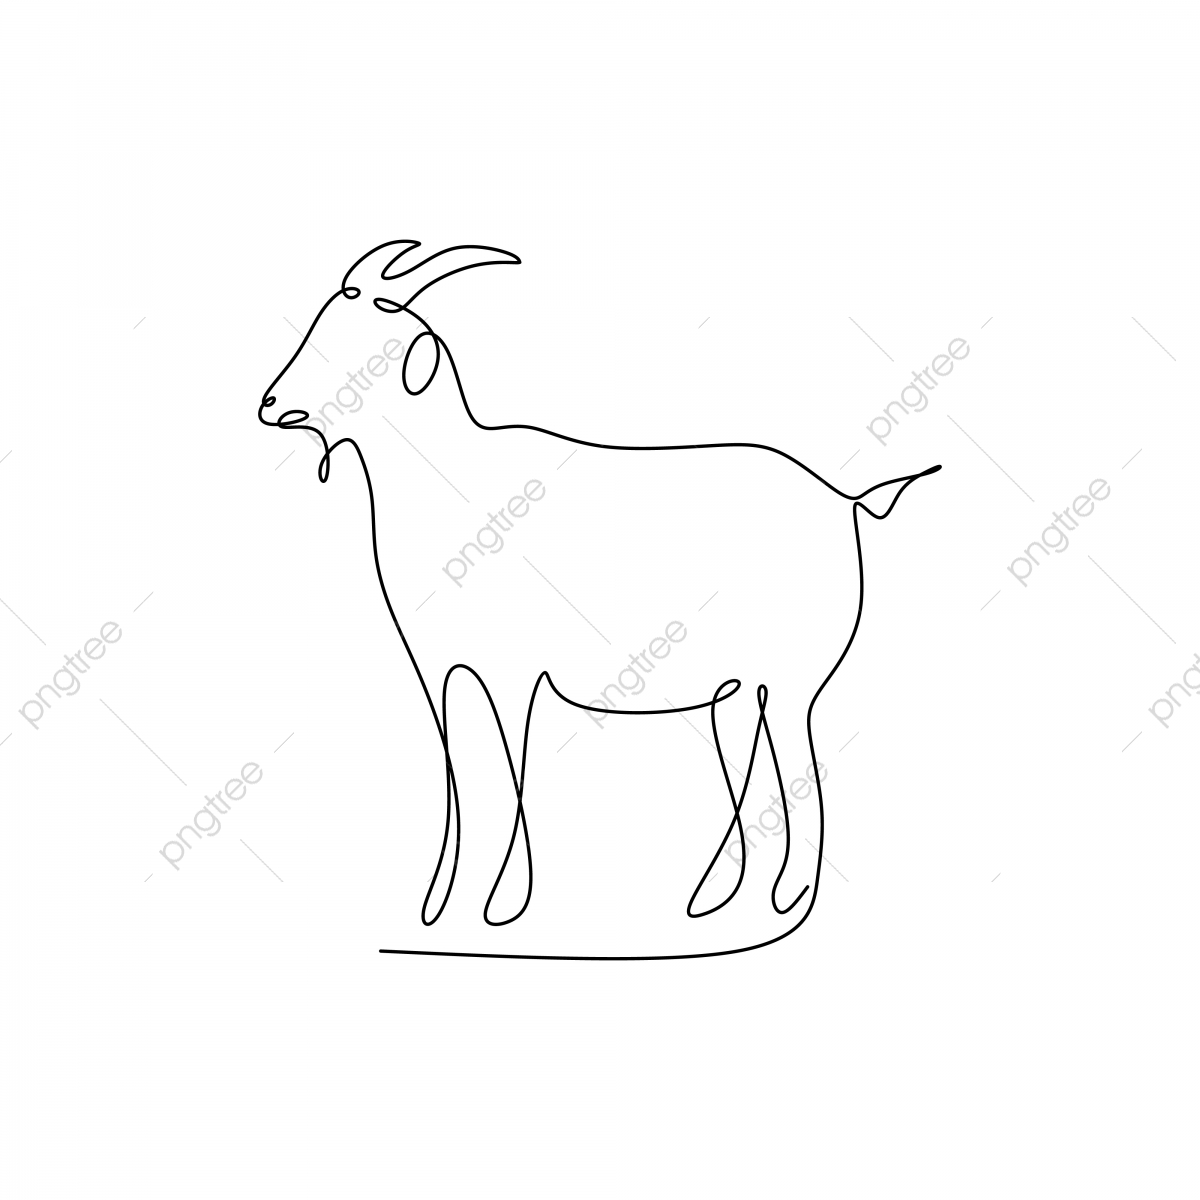 Drawing Continuous Line Of Goat Eid Al Adha, Drawing, Goat